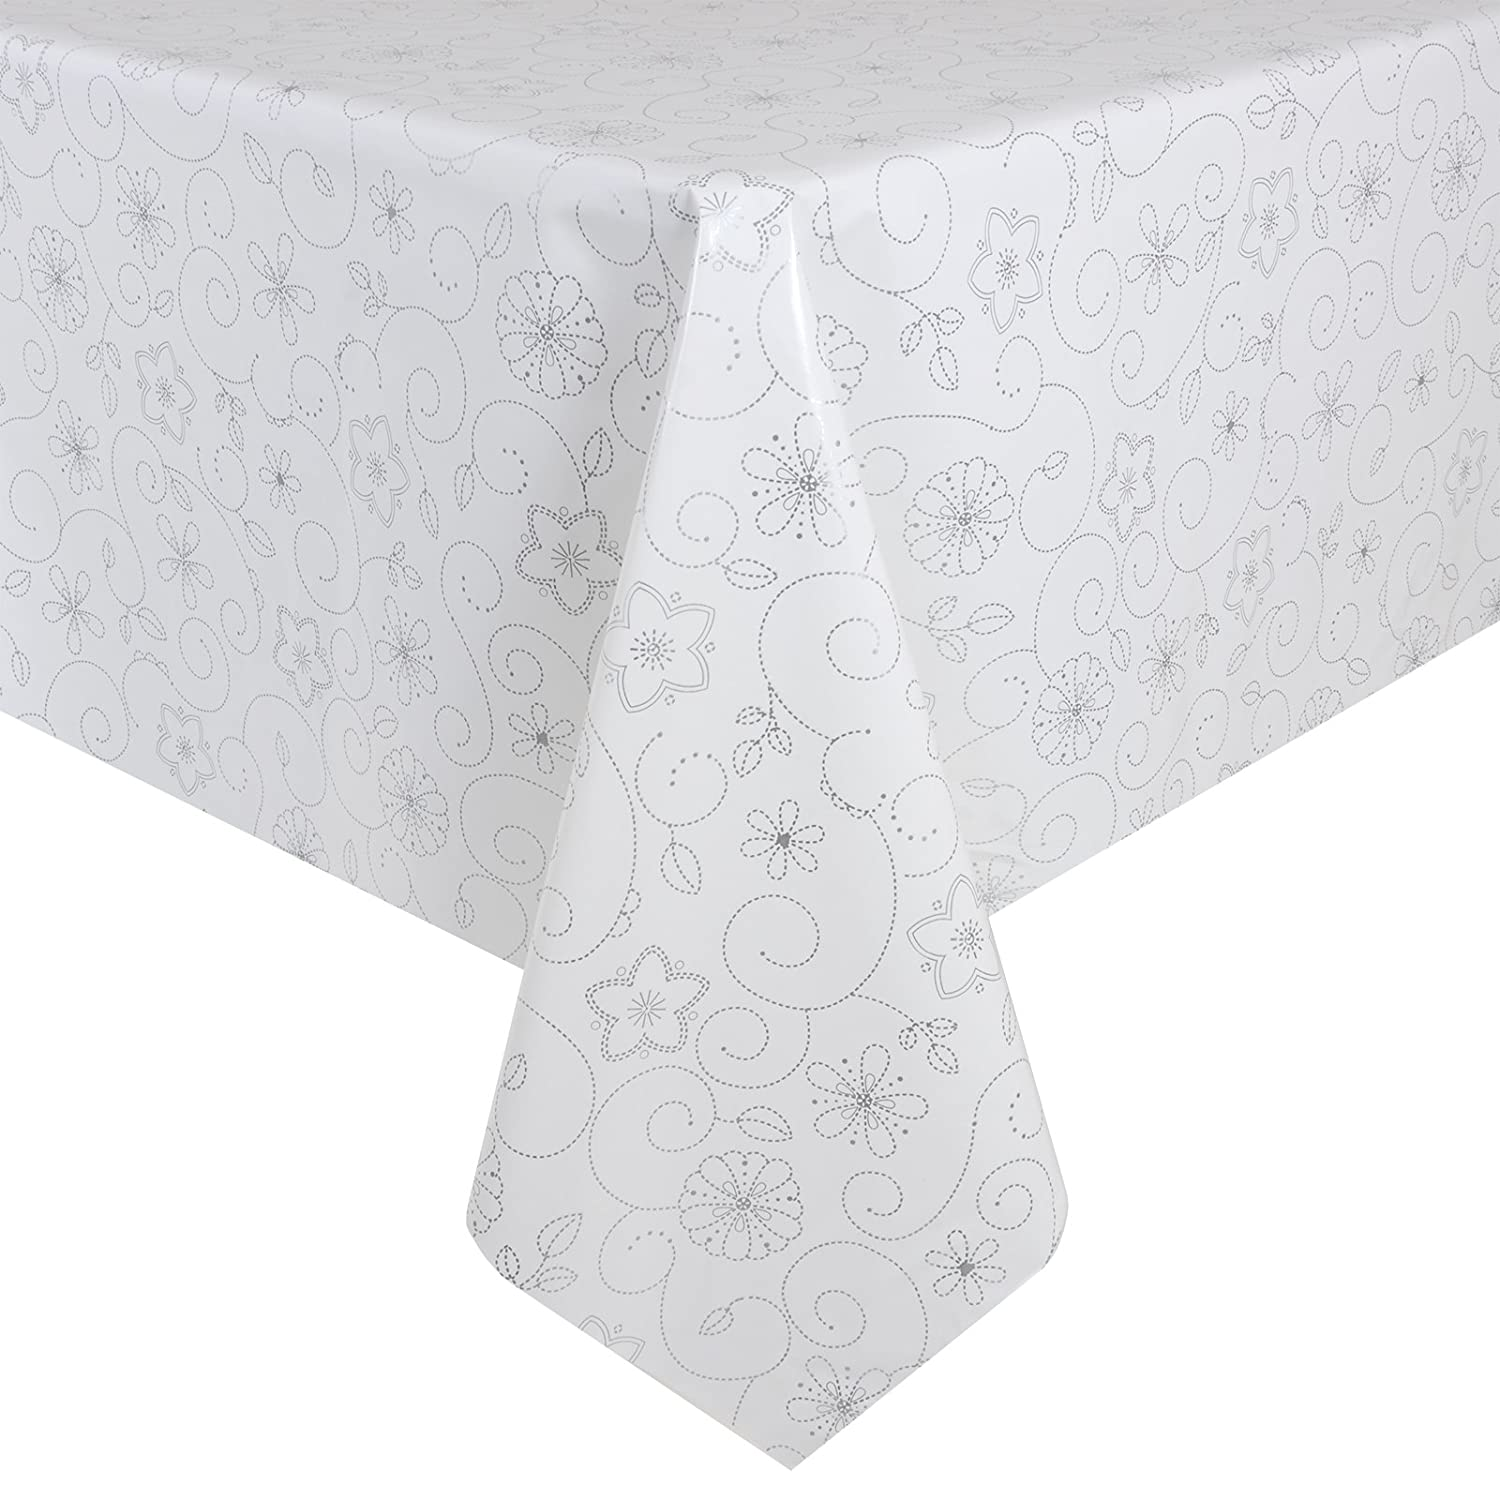 Delightful White/Silver Flowers Wipe Clean PVC Vinyl Tablecloth Cover Protector  140x240cm: Amazon.co.uk: Kitchen U0026 Home